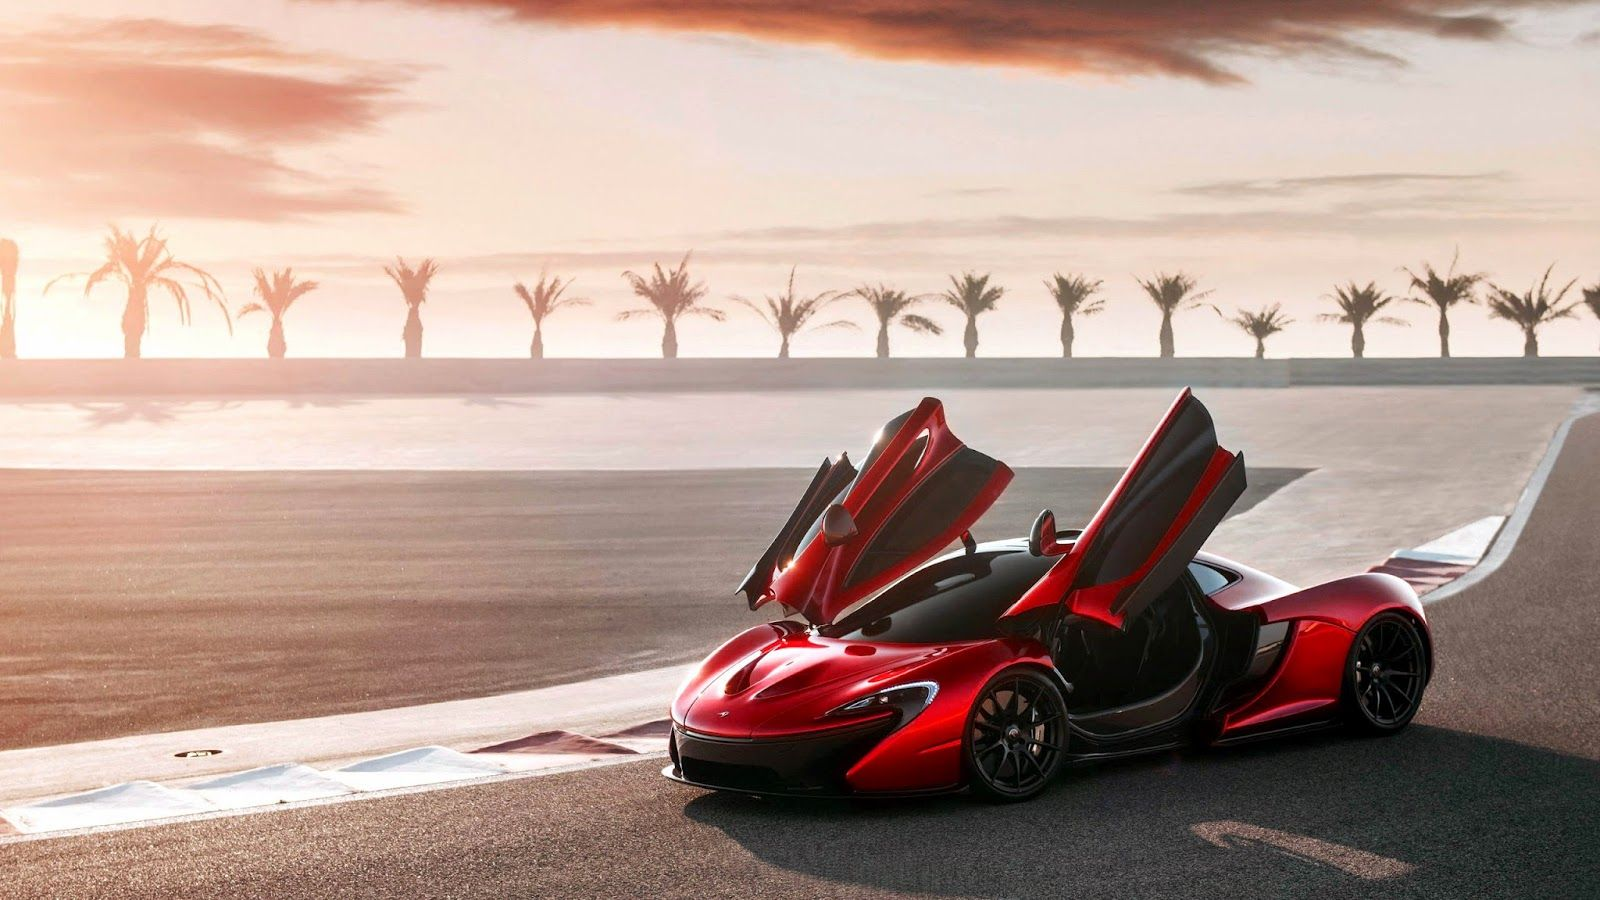 Wallpaper S Station Cars Hd Wallpapers For Desktop Sports Car Wallpaper Car Wallpapers Mclaren Sports Car